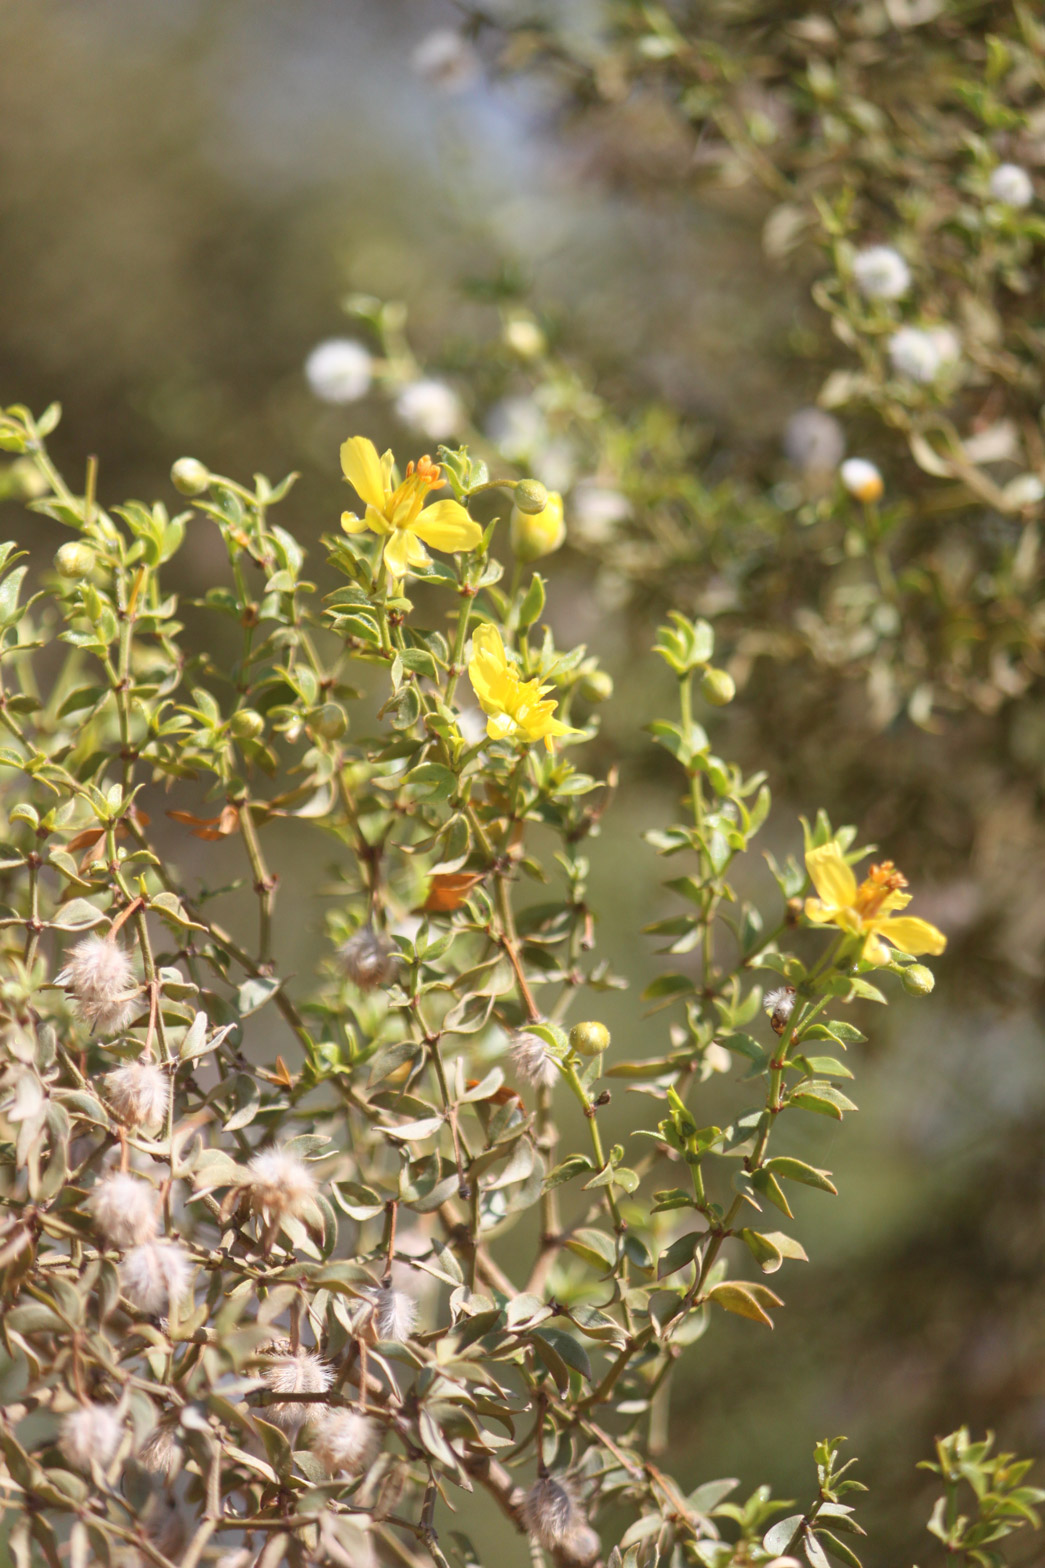 A close-up of the yellow flowers of the Creosote.